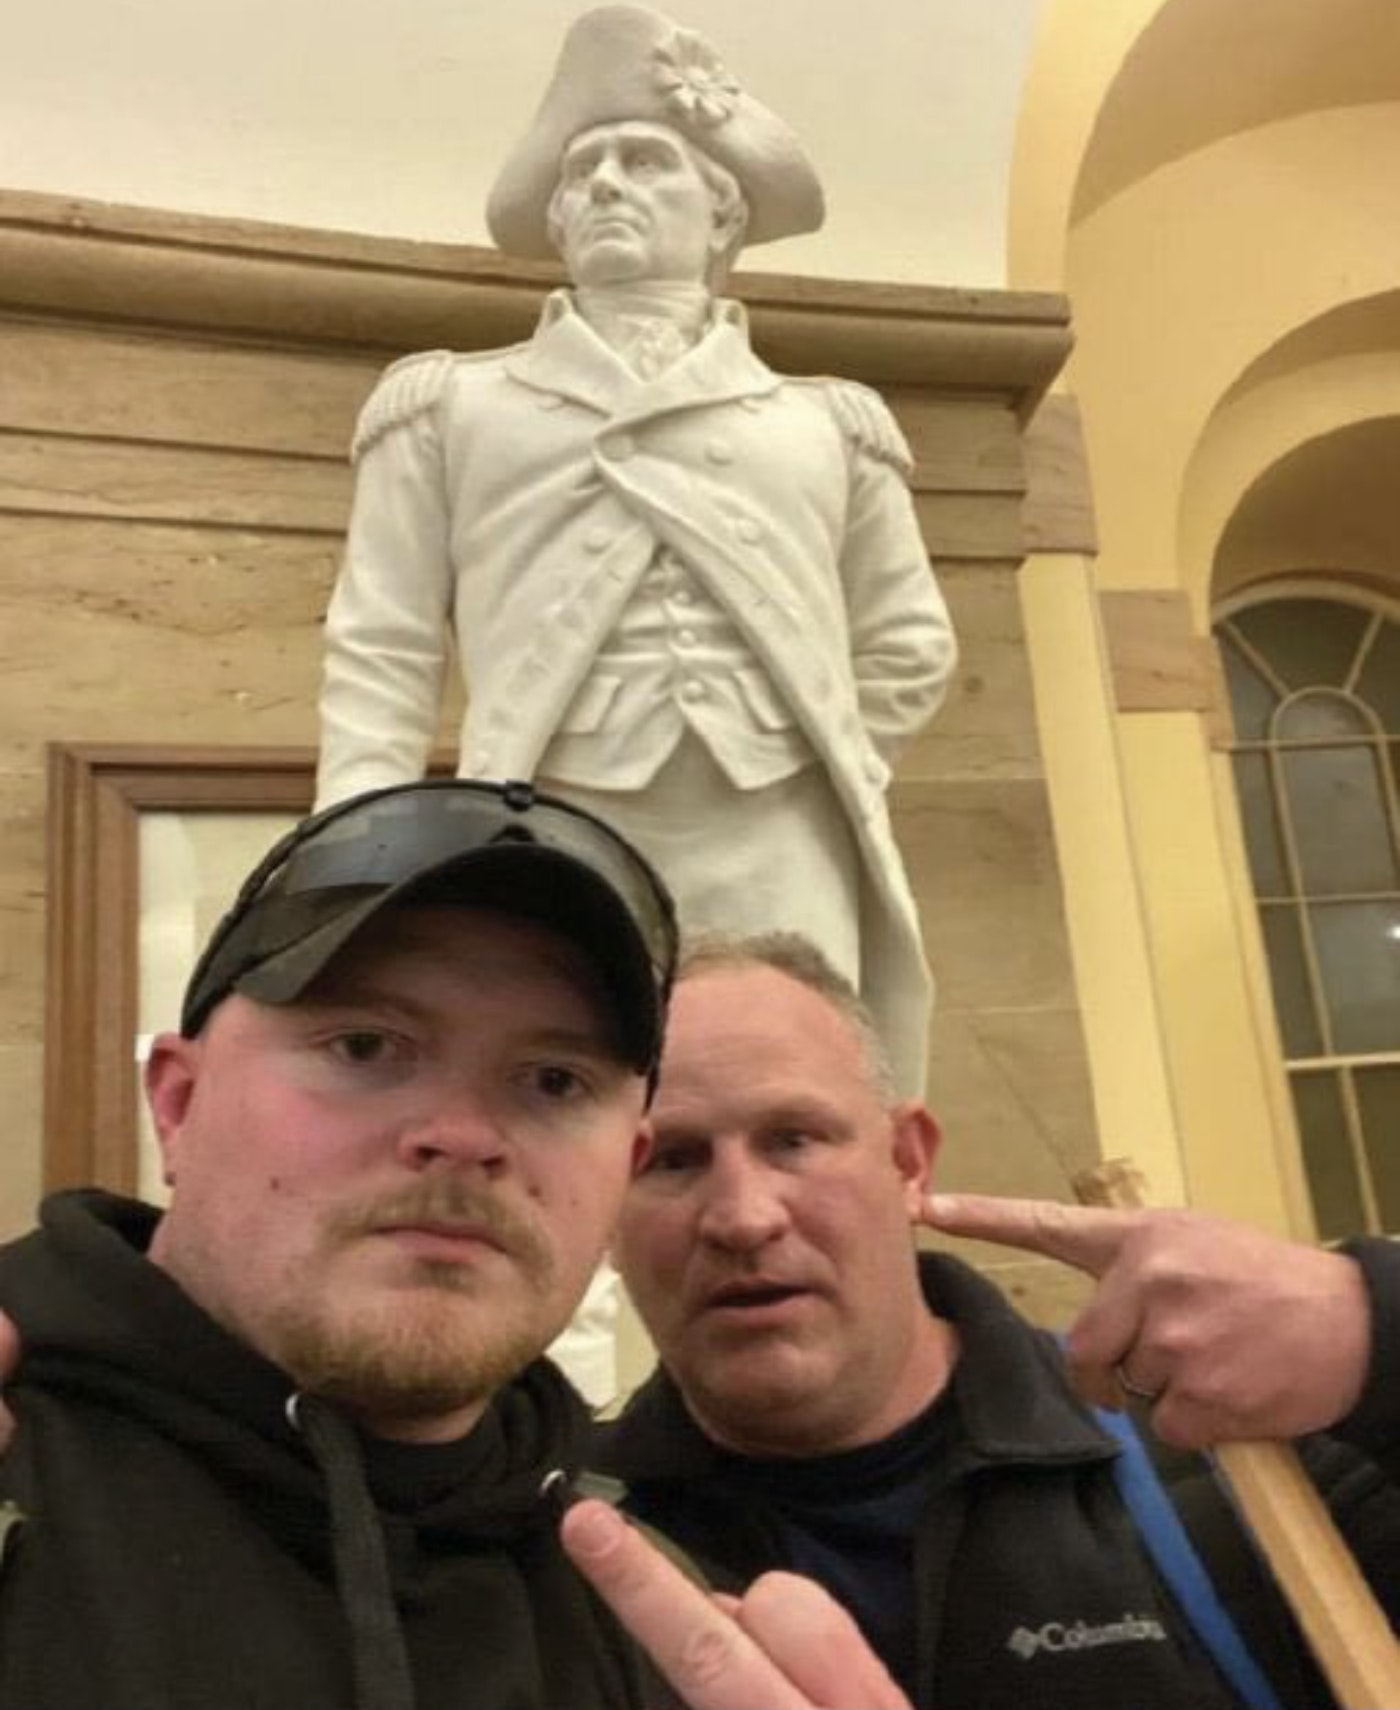 In a photo posted to social media by Robertson, the two men pose in the Capitol Crypt on Jan. 6.